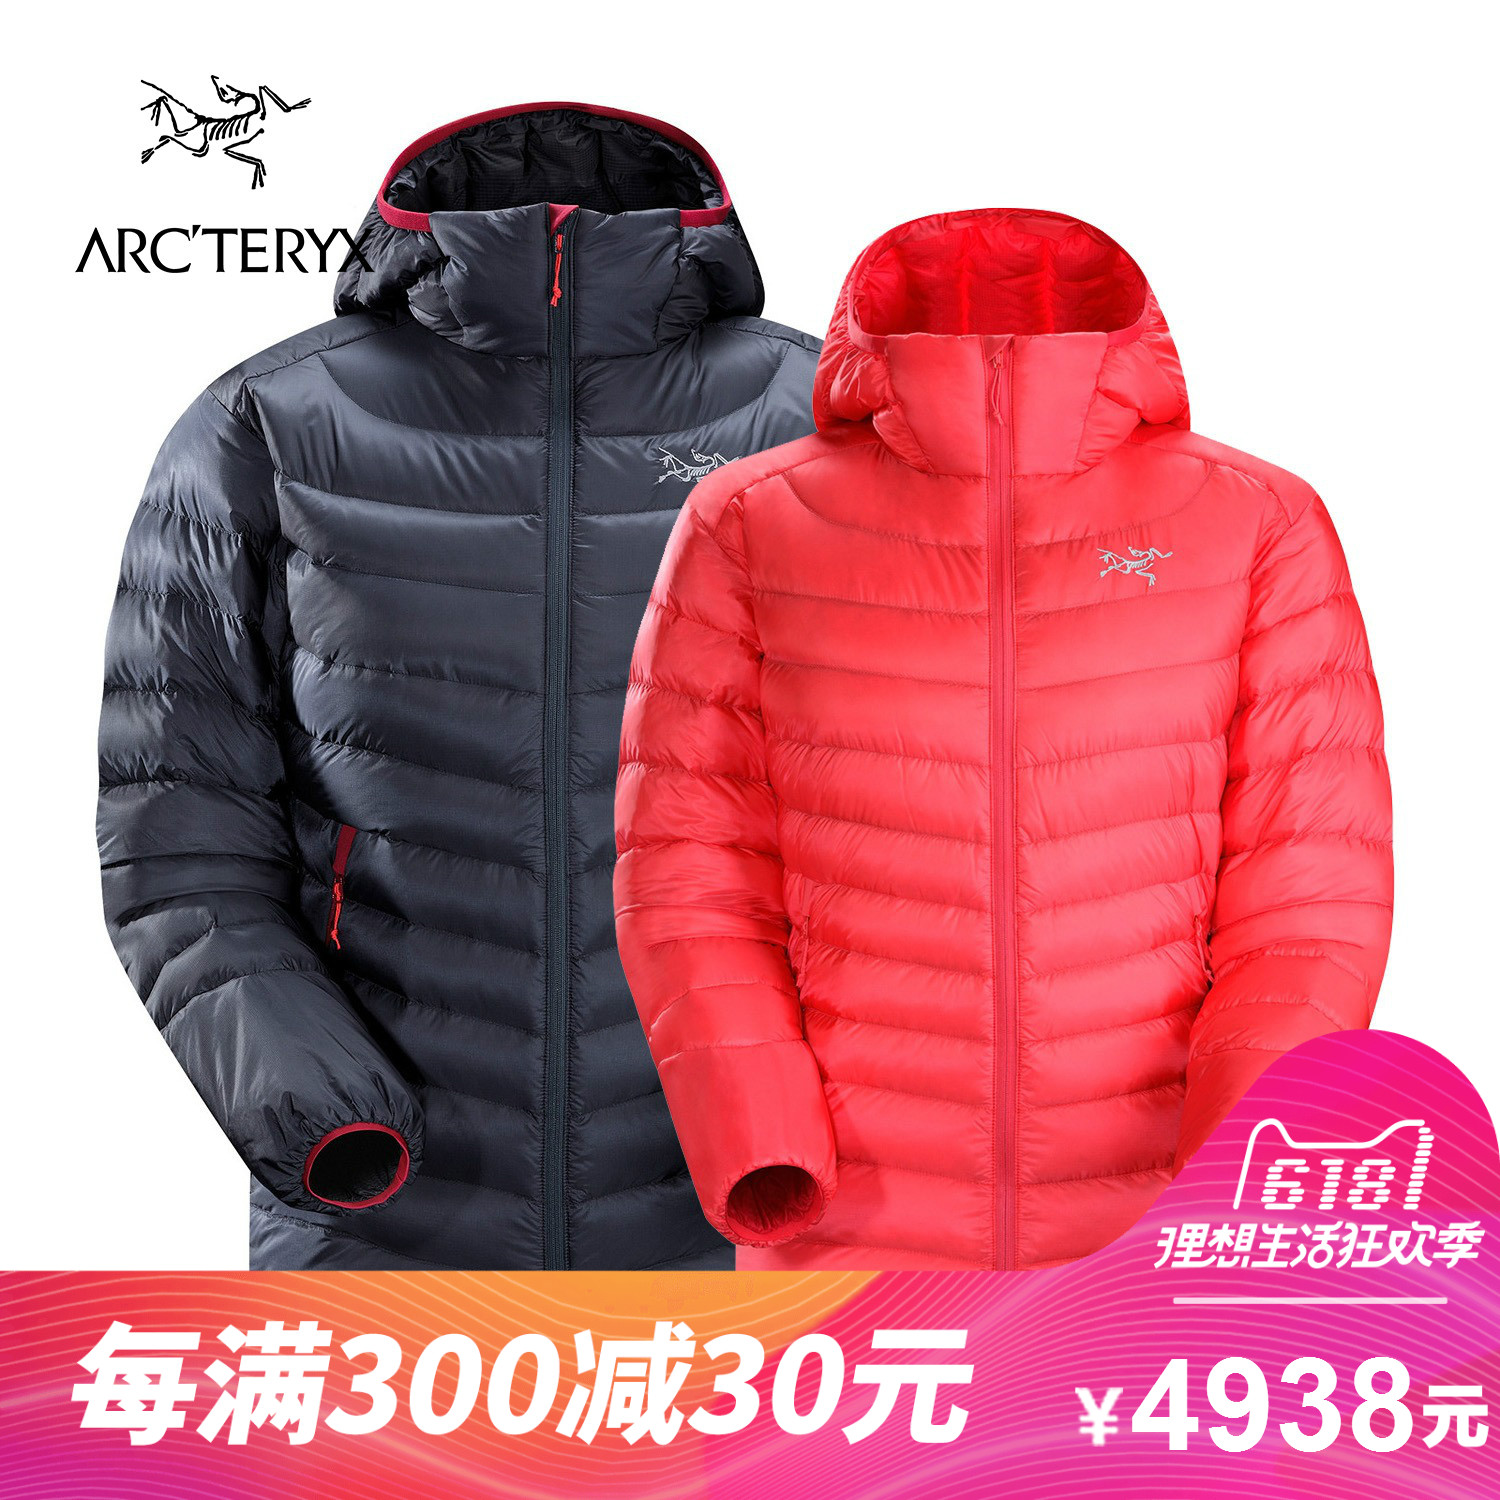 ARCTERYX / Archaeopteryx men and women outdoor lightweight warm hooded down jacket Cerium LT Hoody